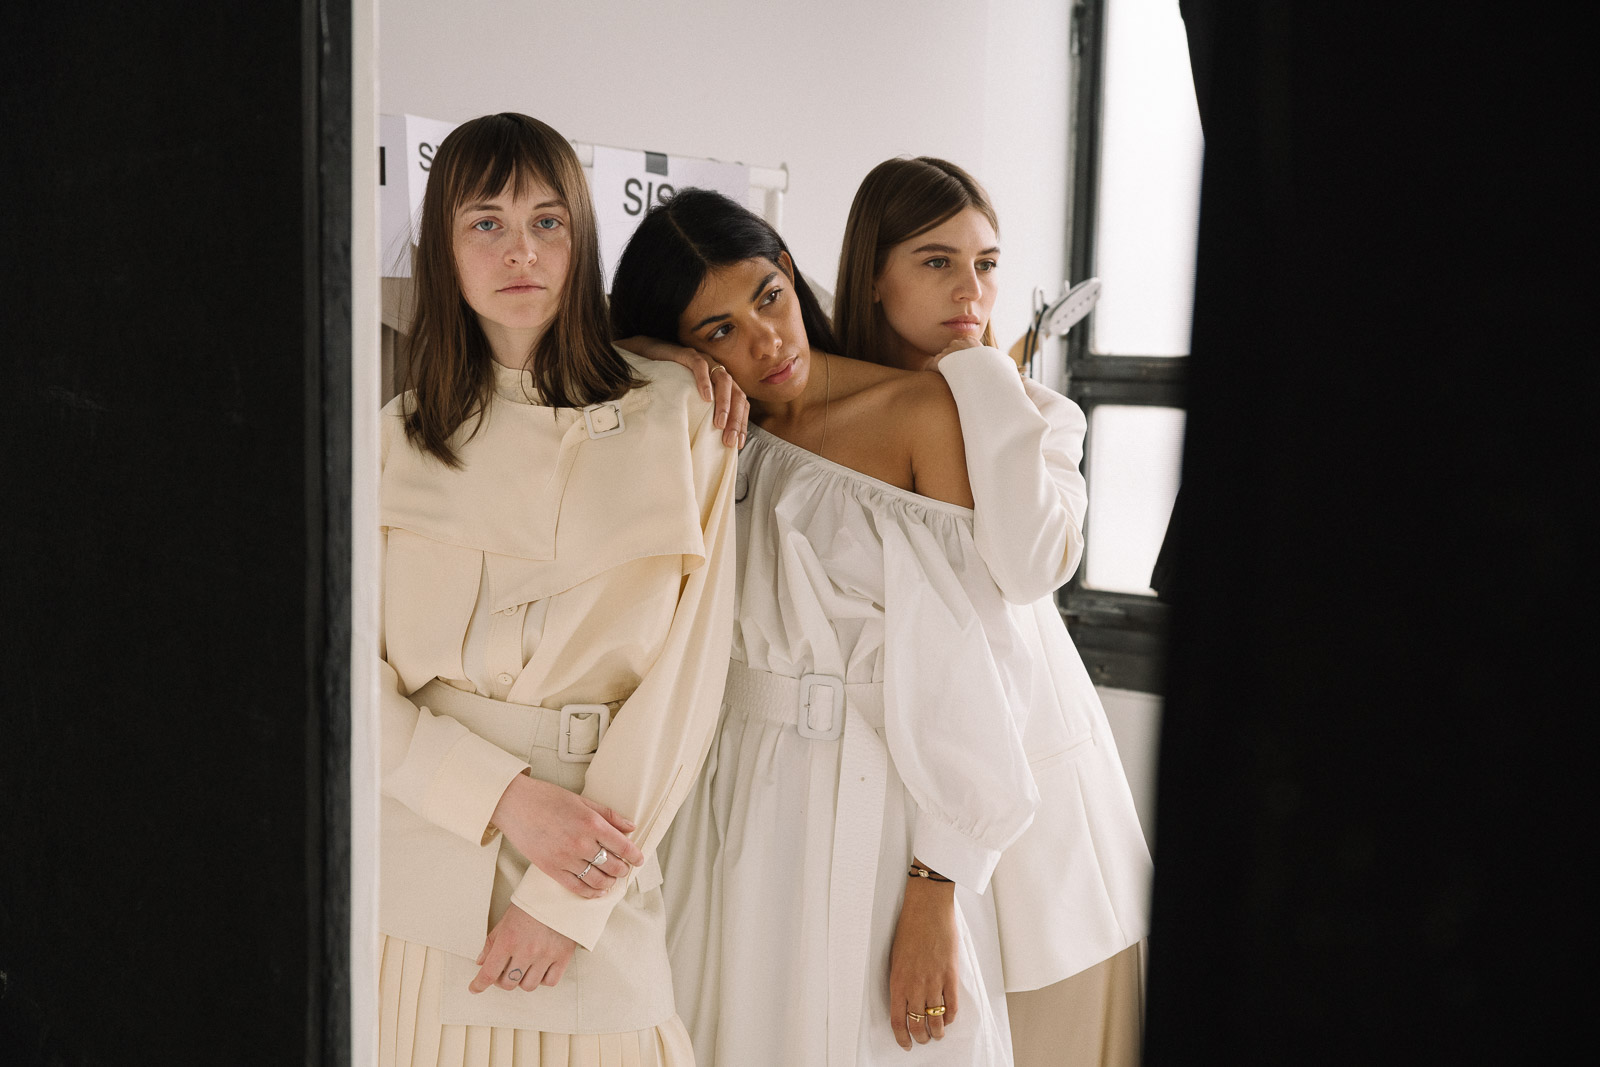 storm wears Joseph SS19 collection Shan Cotton Dress in white Sissi Pohle wears Tally Fuji Silk Blouse and Swantje Soemmer wears Claudia Suede Dress